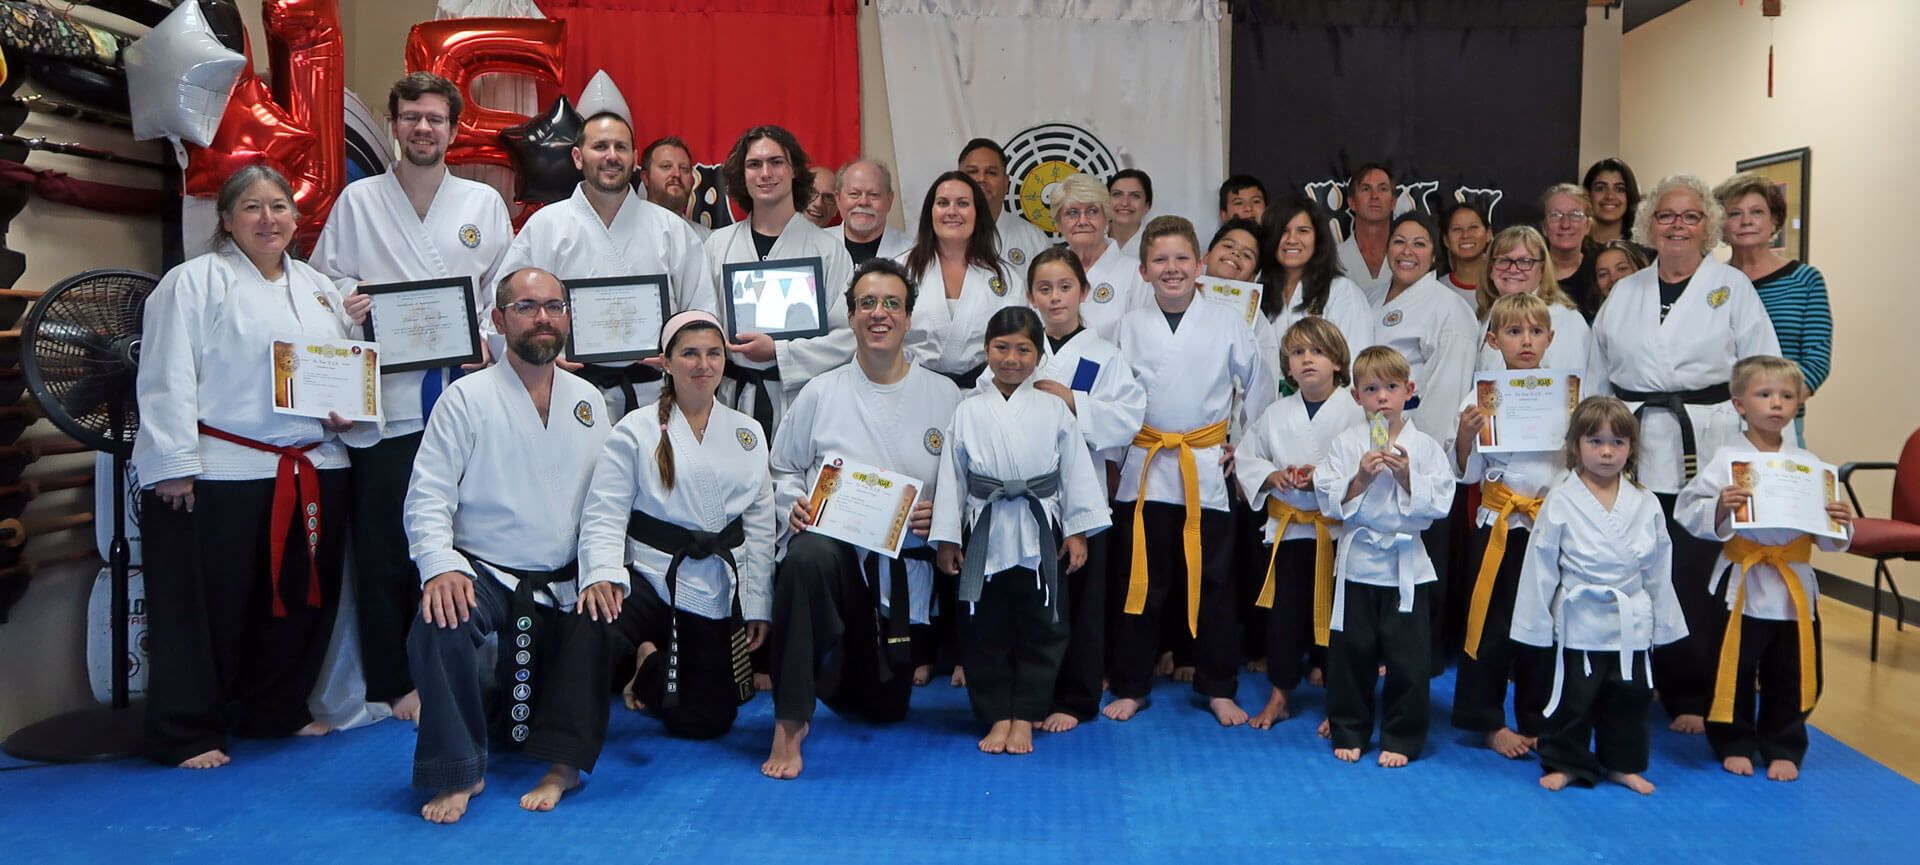 Martial Arts in Huntington Beach, TaiChi, Yoga, Archery